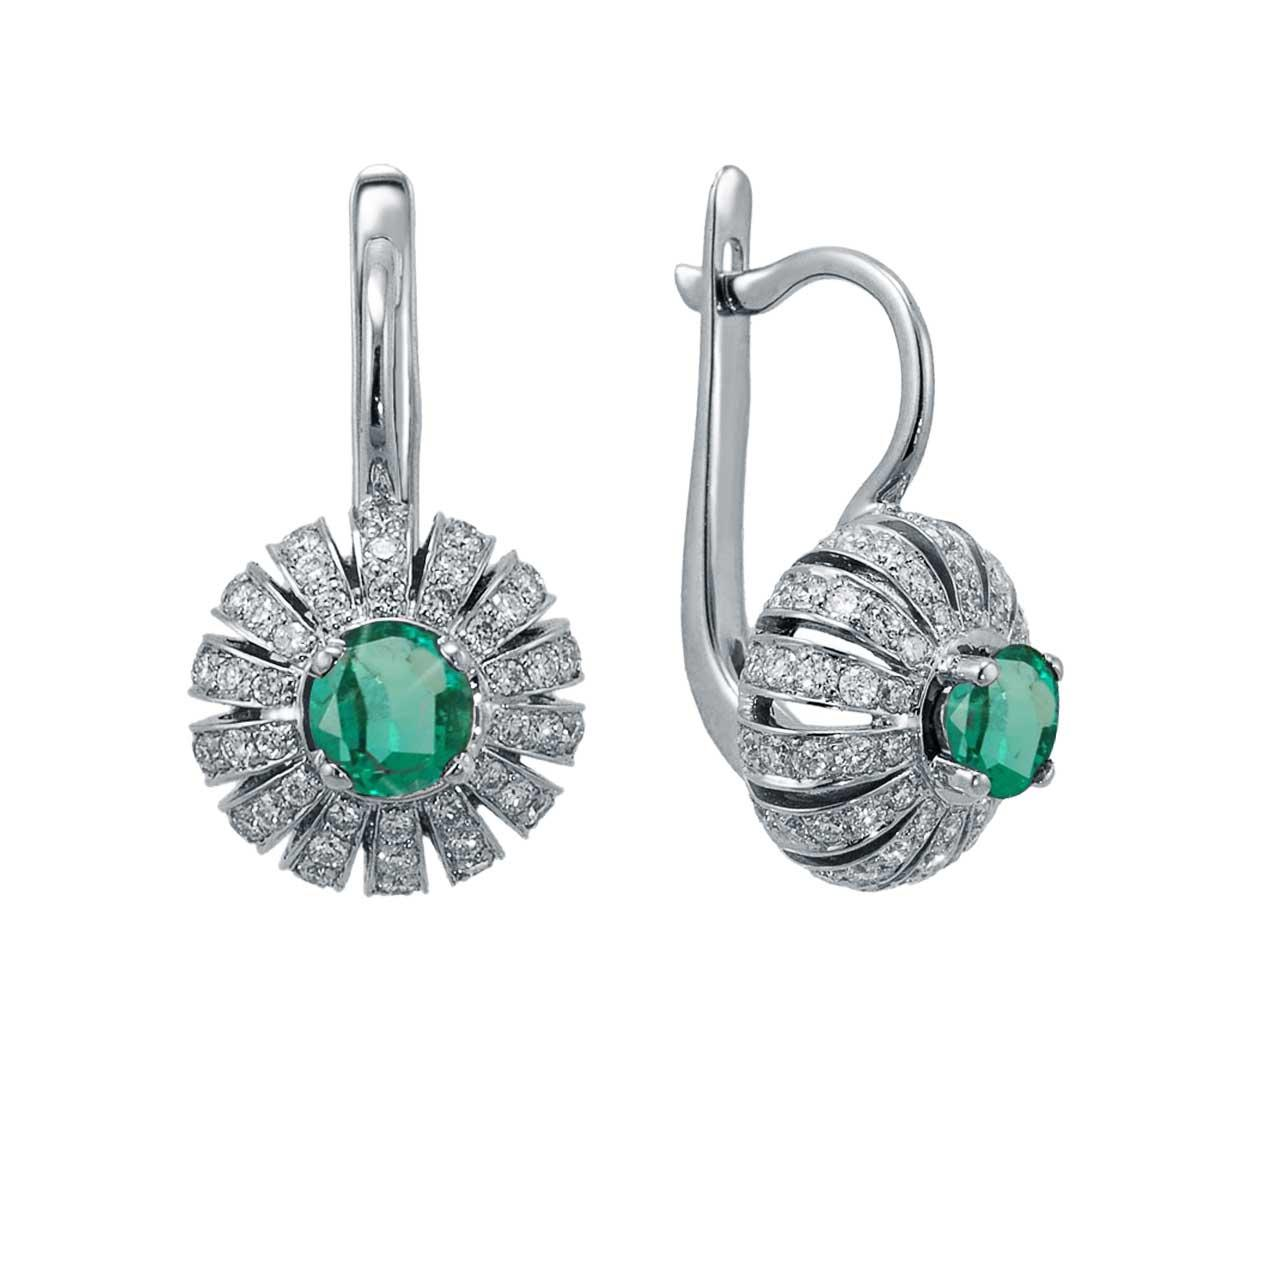 Eastern Motif Emerald and Diamond Earrings